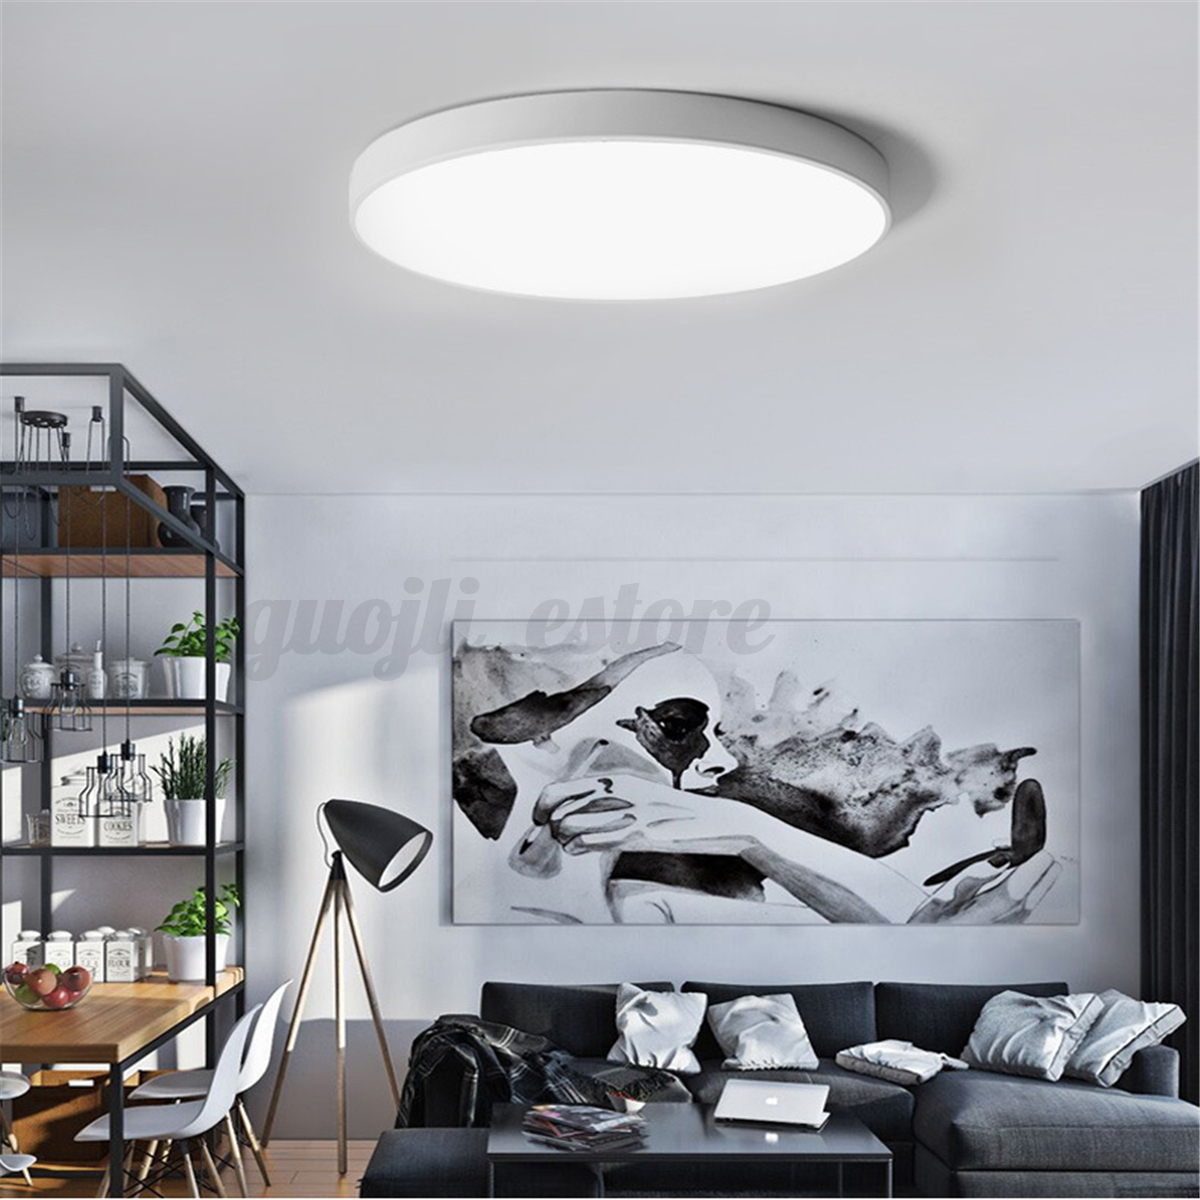 Black white modern led ceiling light surface mount lamp home bedroom living room ebay - Colors for modern living room chromatic vitality ...